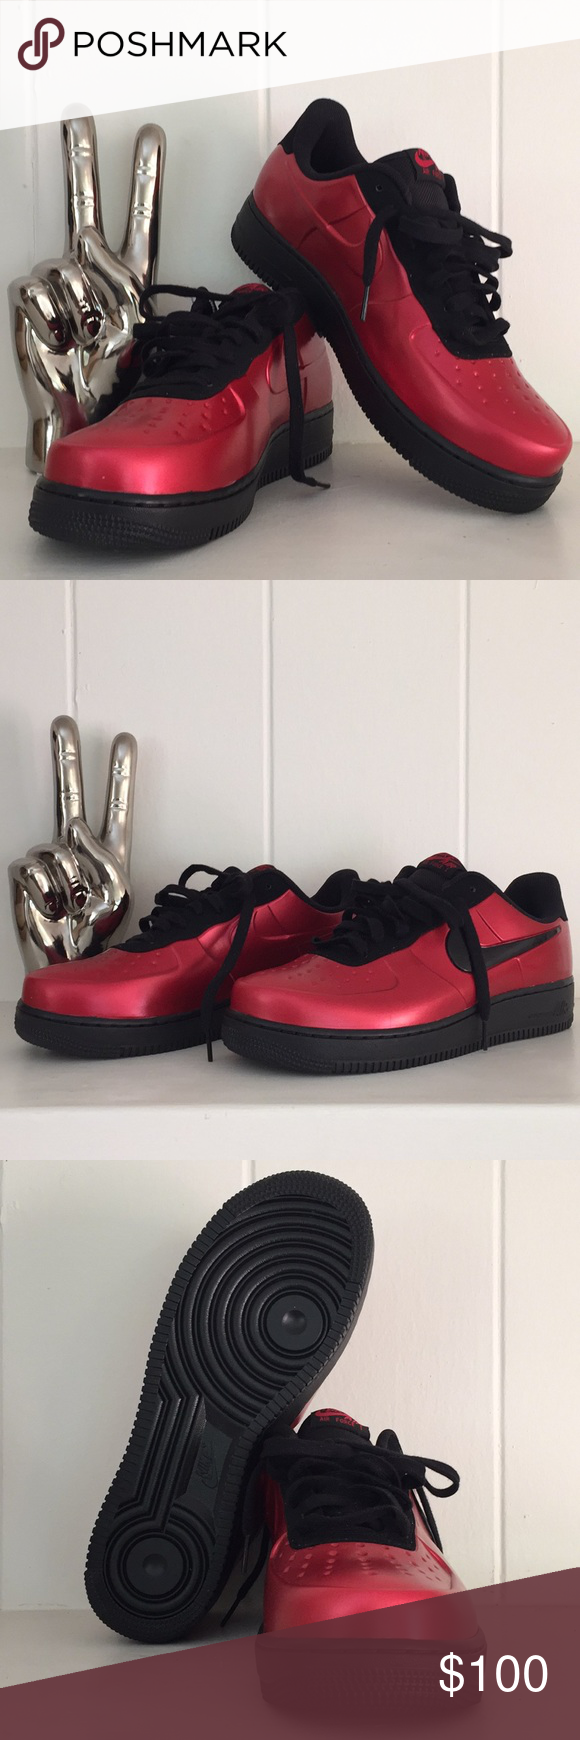 """47bb70b7fb5 Nike Air Force 1 Foamposite Pro Cup """"cough drop"""" Brand New without ..."""